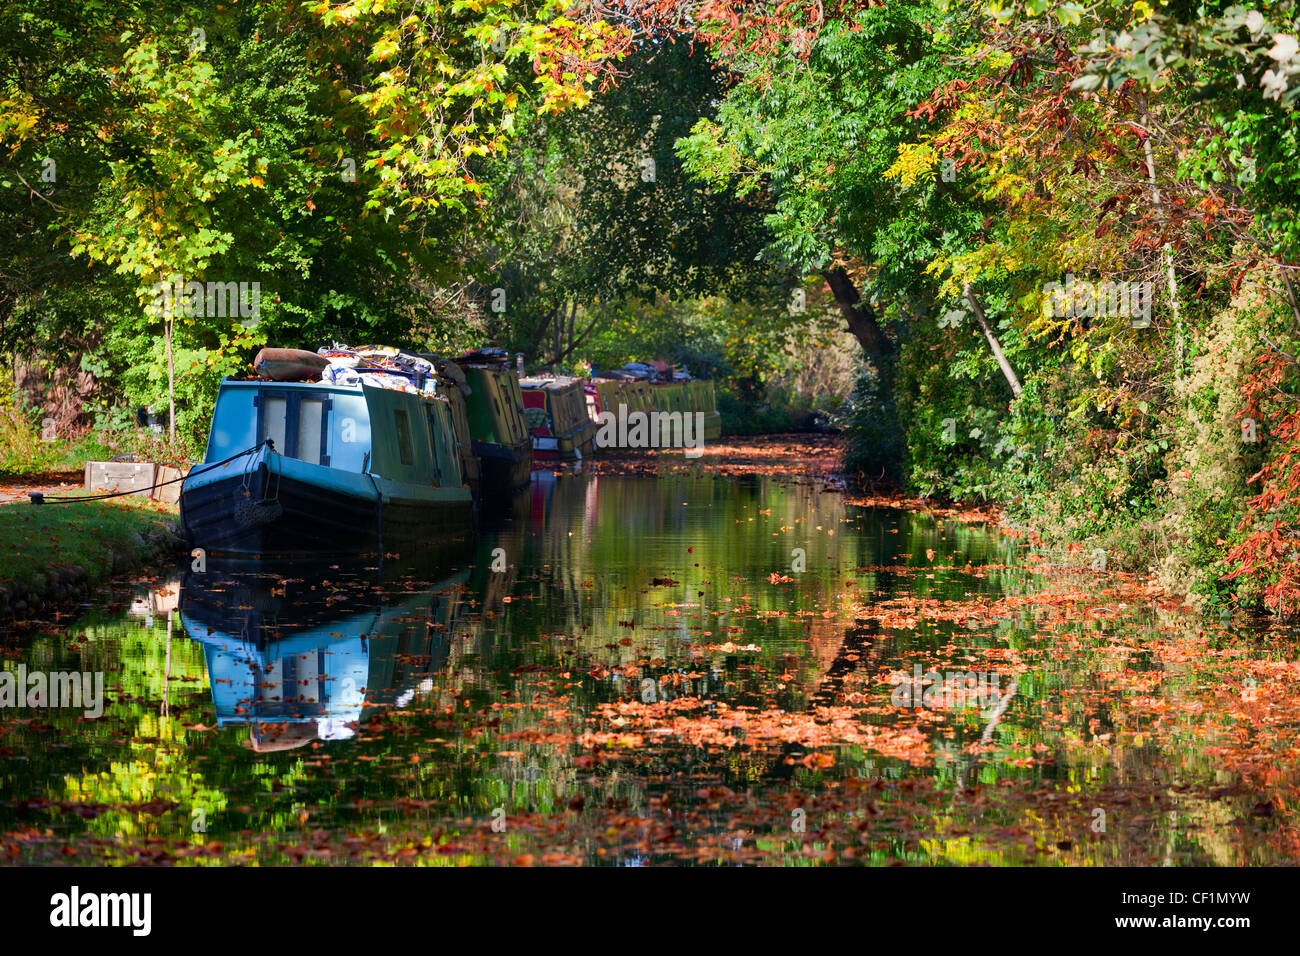 Houseboats on Oxford Canal in autumn. - Stock Image